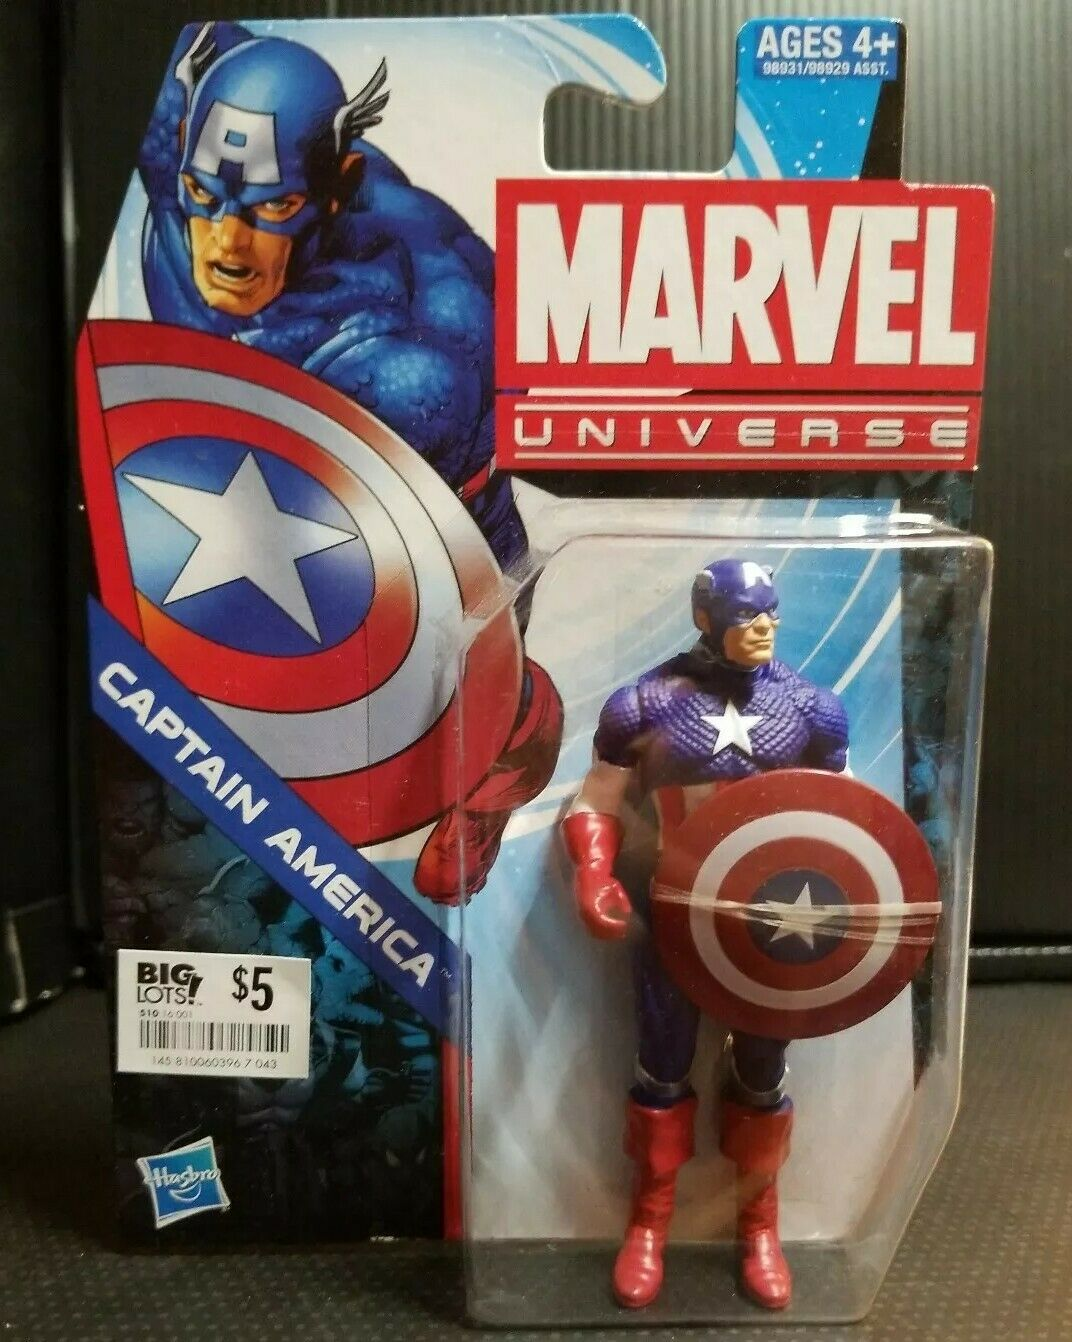 environ 10.16 cm 4 in Marvel Universe Captain America action Figure by Hasbro 2011-Comme neuf on Card